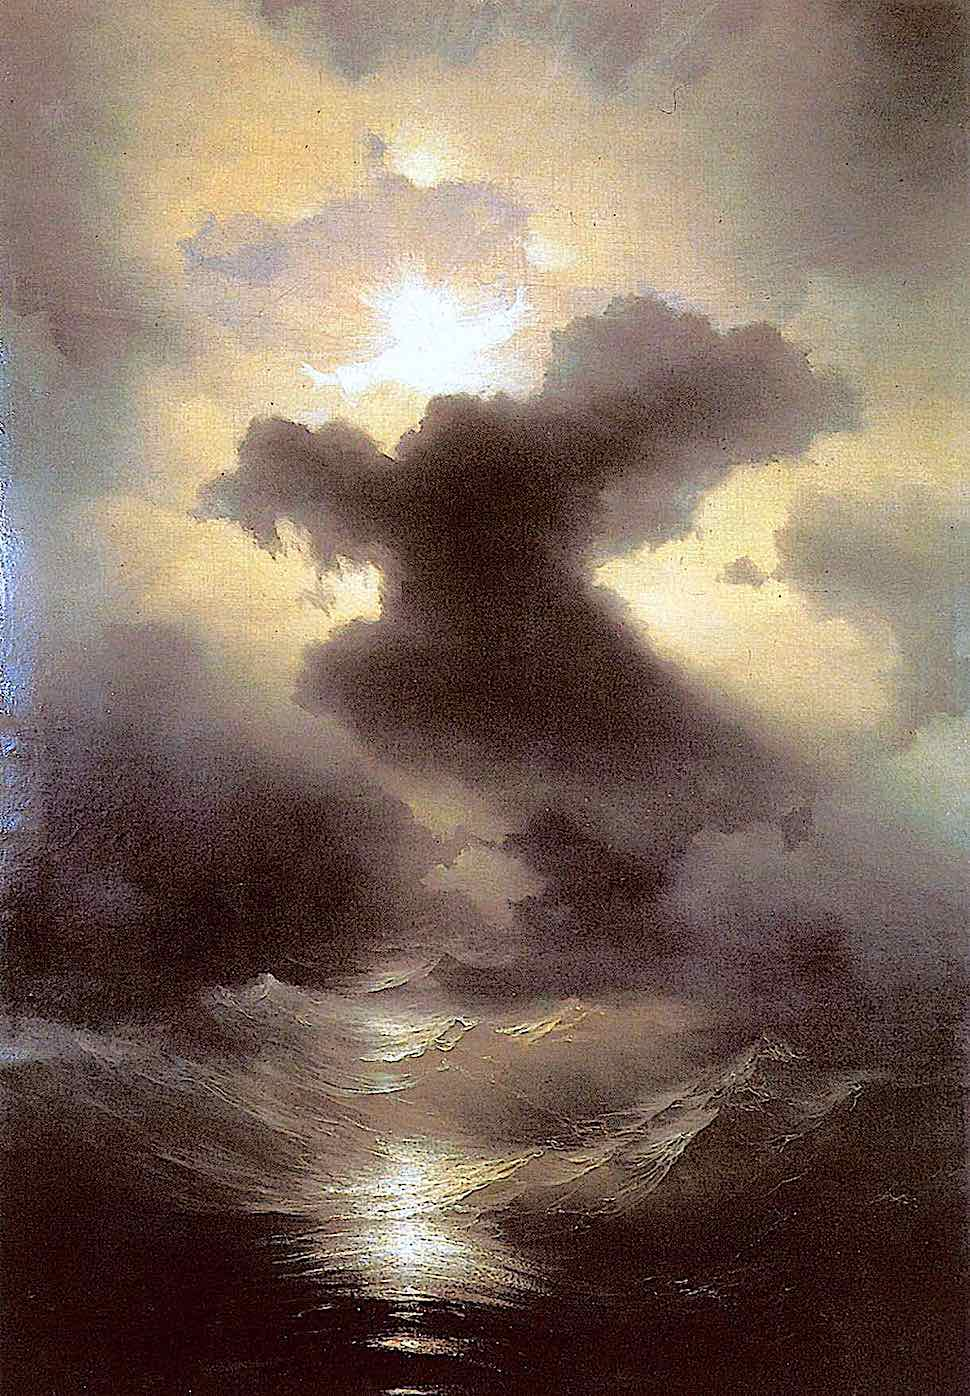 a Ivan Aivazovsky 1841 painting of stormy seas